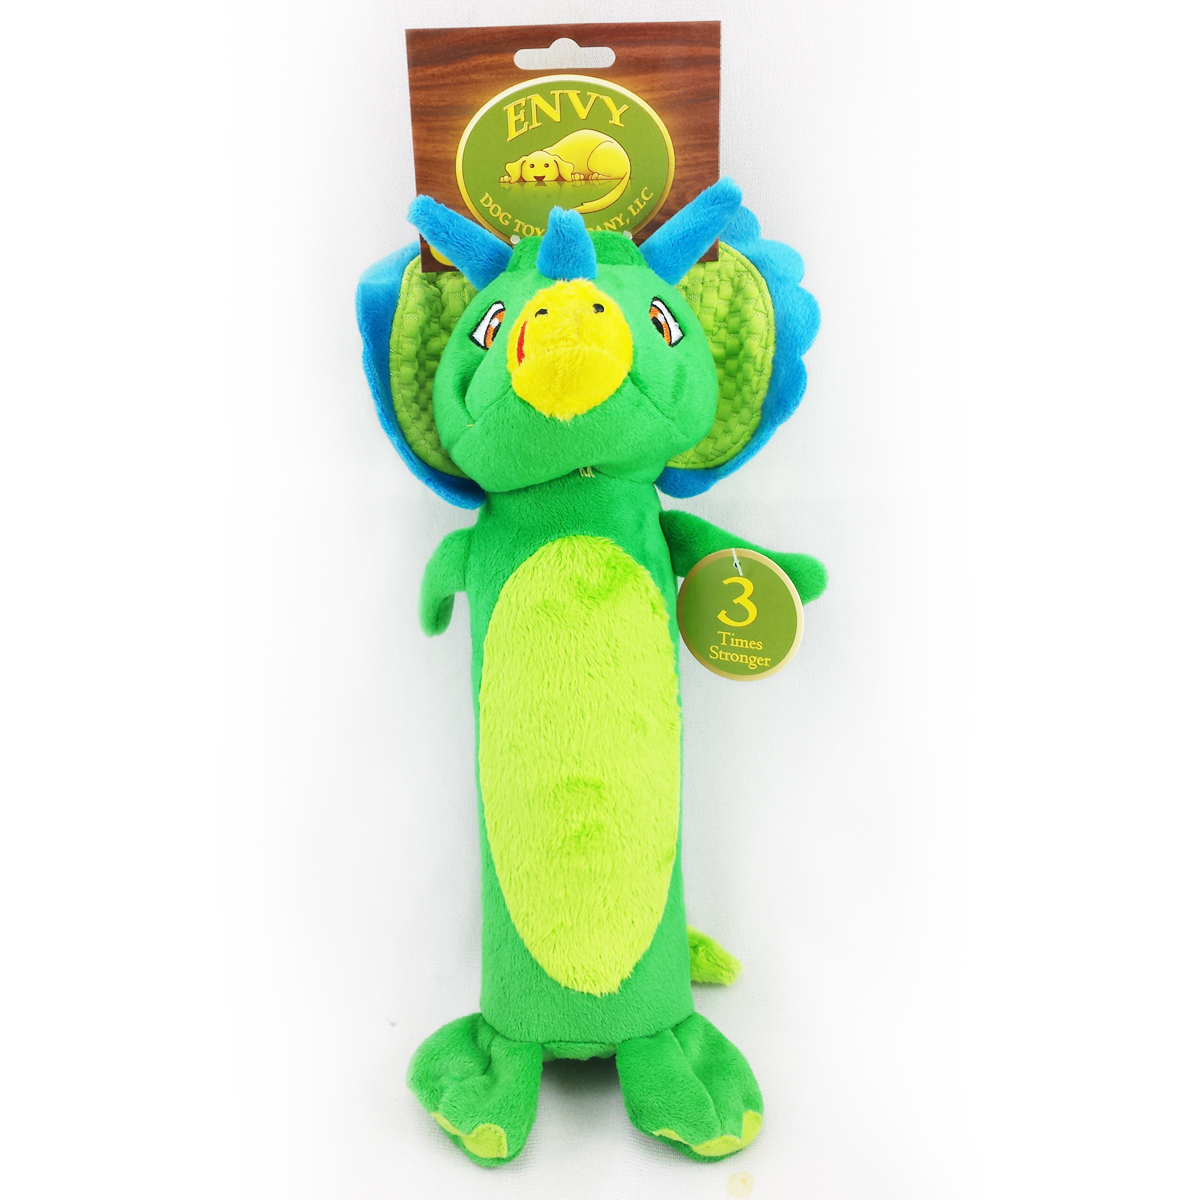 Papa Bow Wow EV 01681 11.5 in. Triceratops Bottle Cruncher